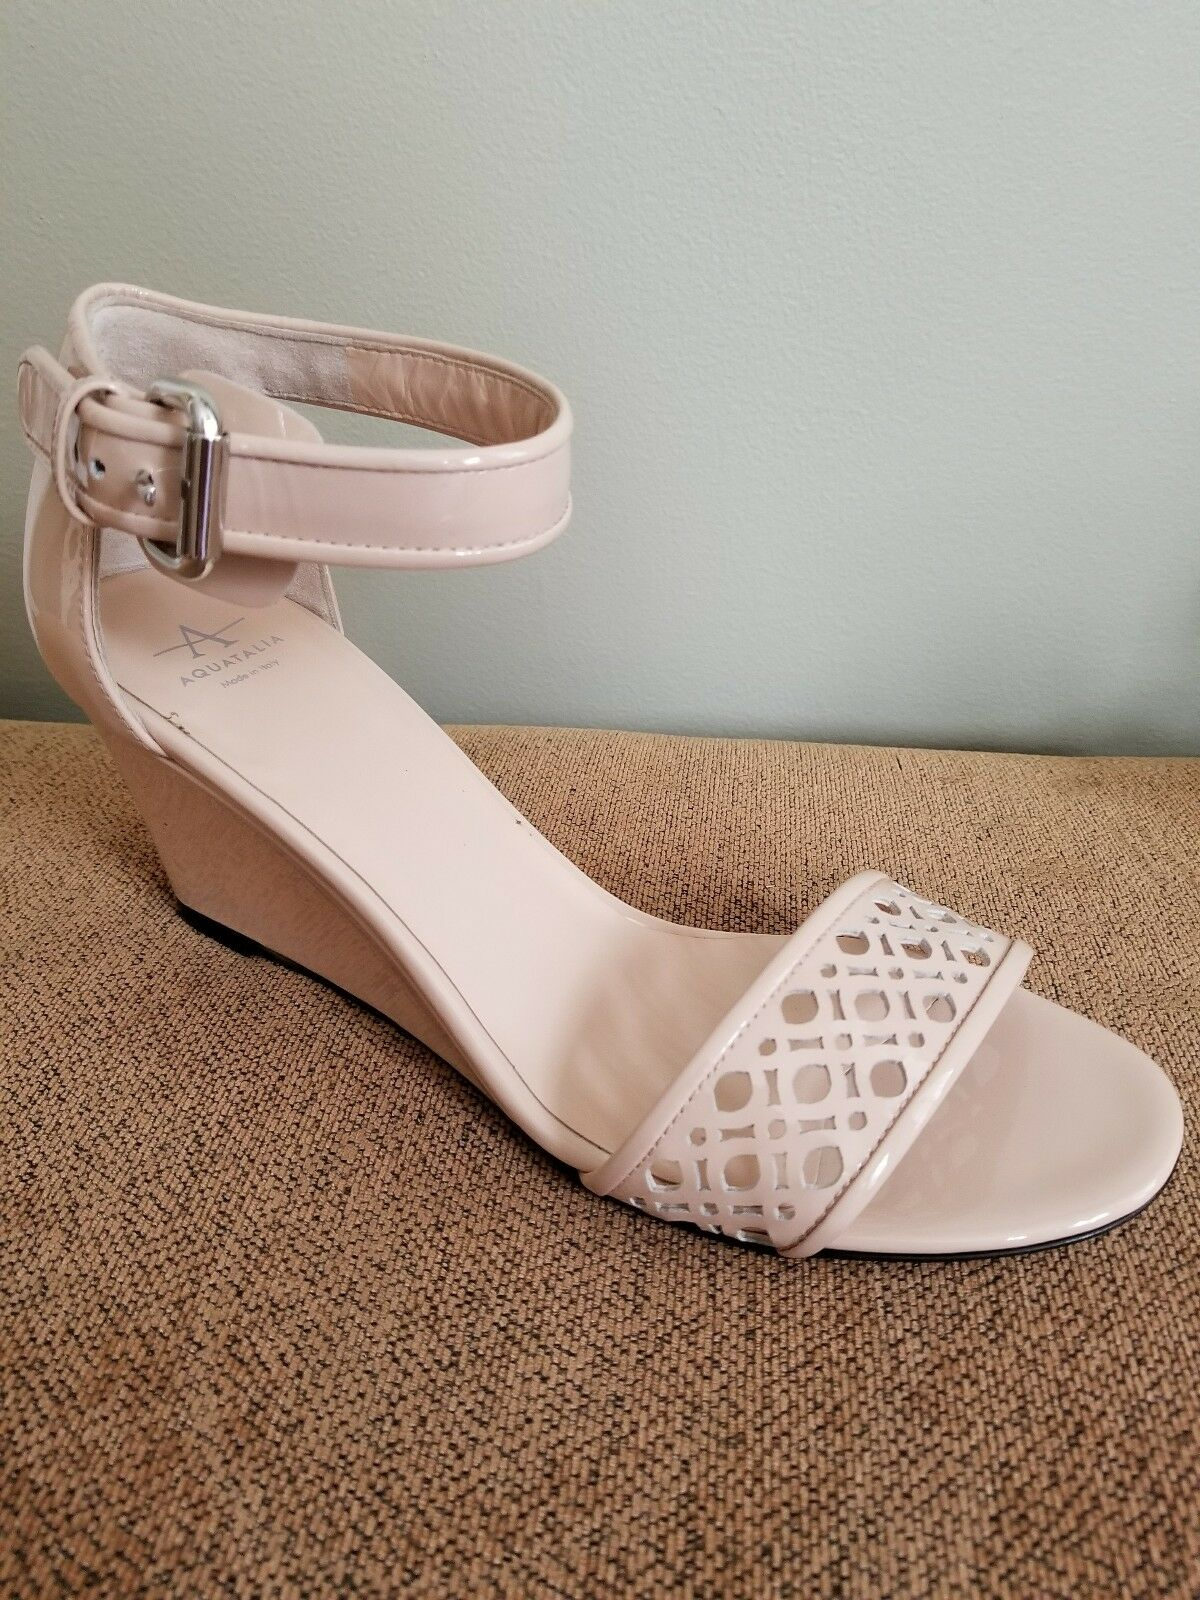 Aquatalia Doria Size 9 Patent Women's Wedge Sandals, bluesh MSRP  395